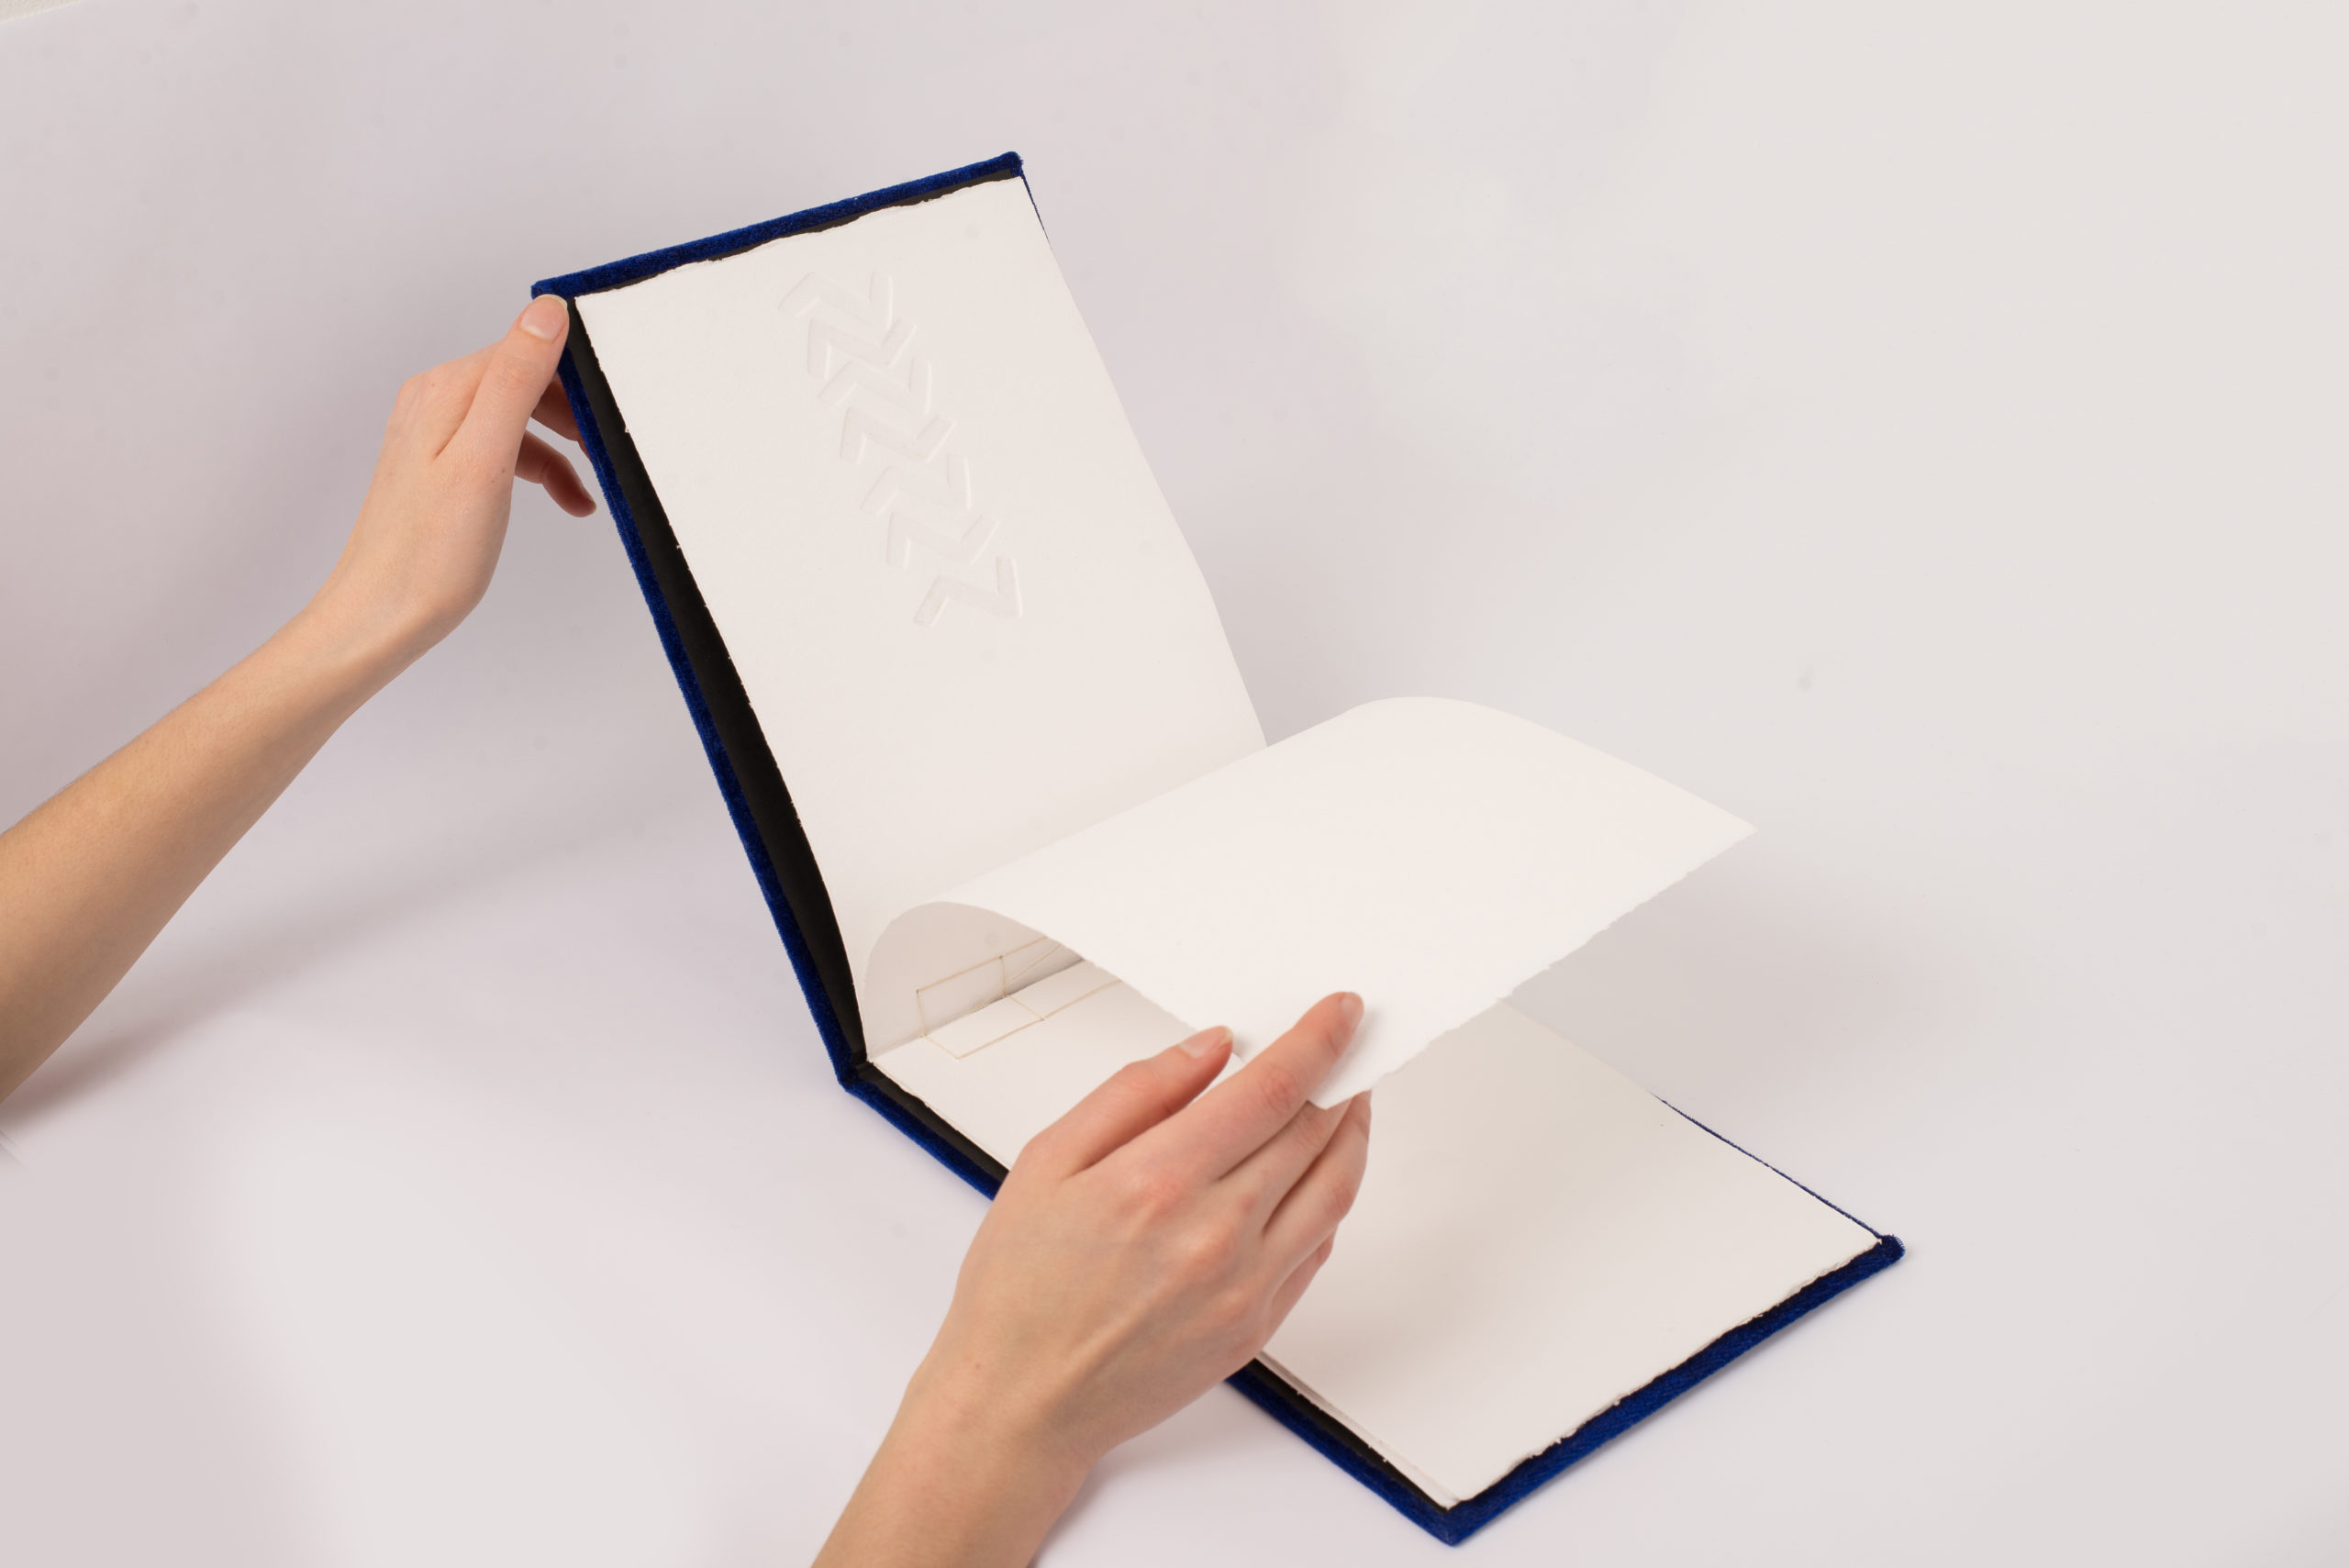 Two pale hands flipping through a wide book with a debossed pattern inside